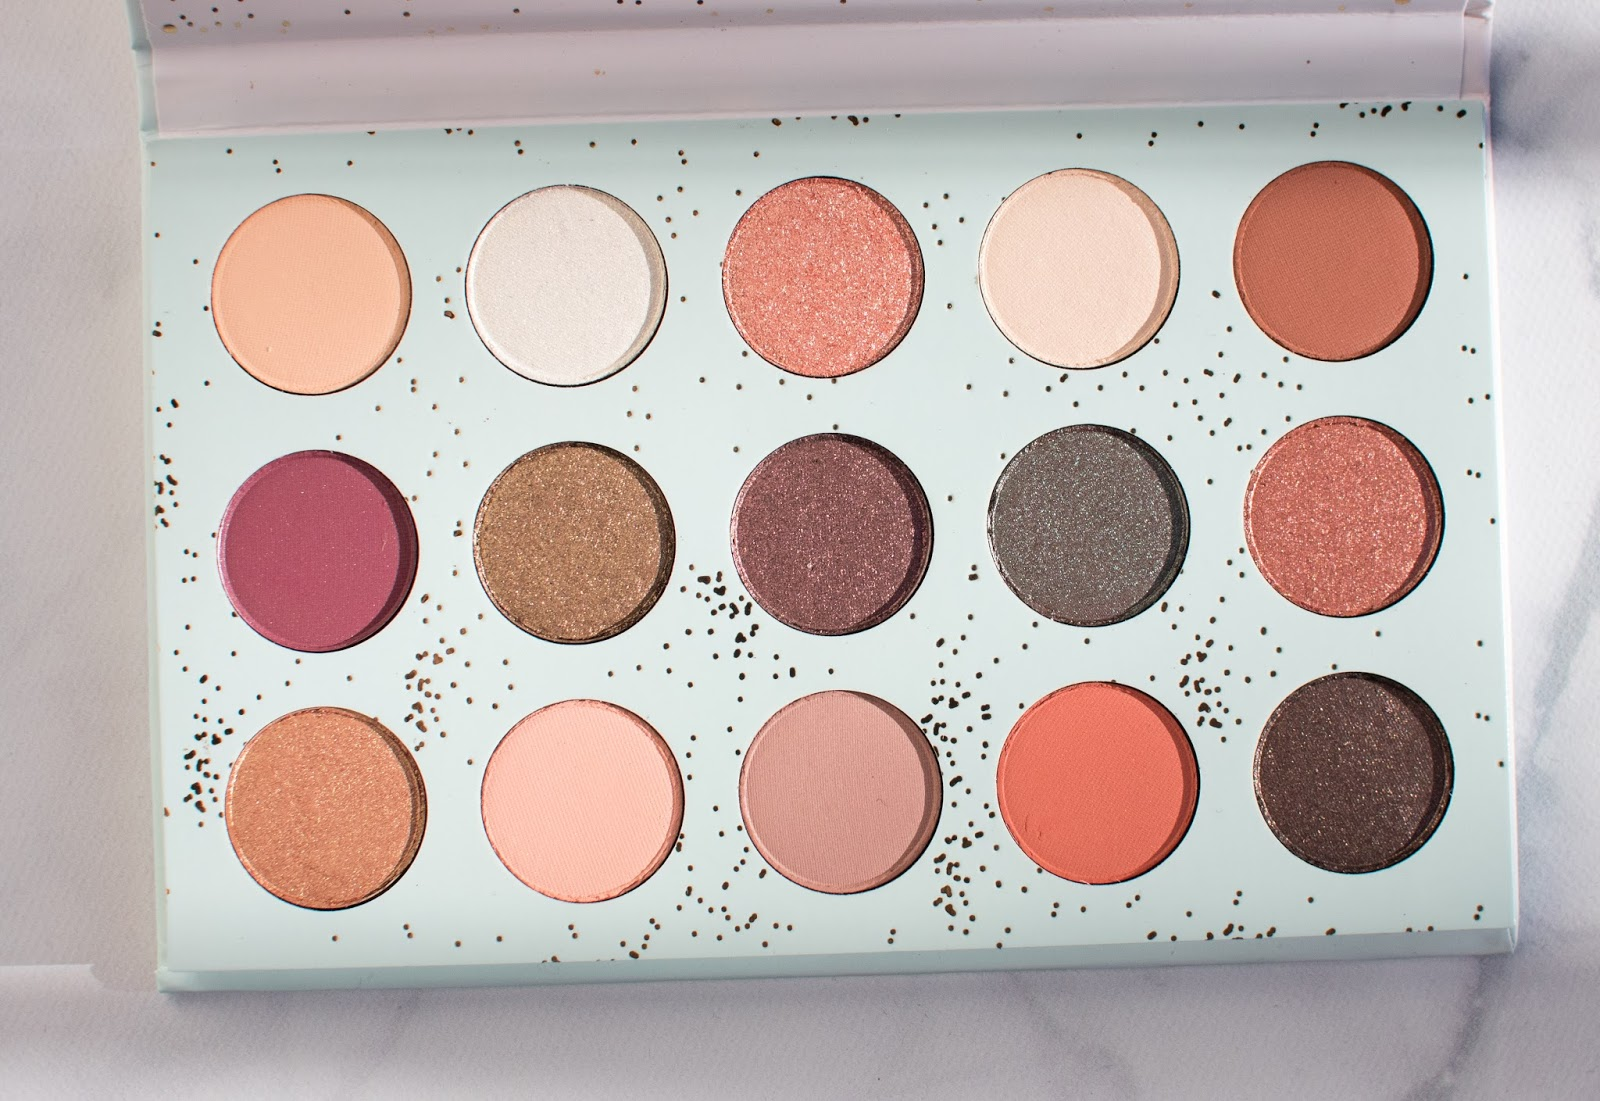 Colourpop All I See is Magic Pressed Powder Shadow Palette Open